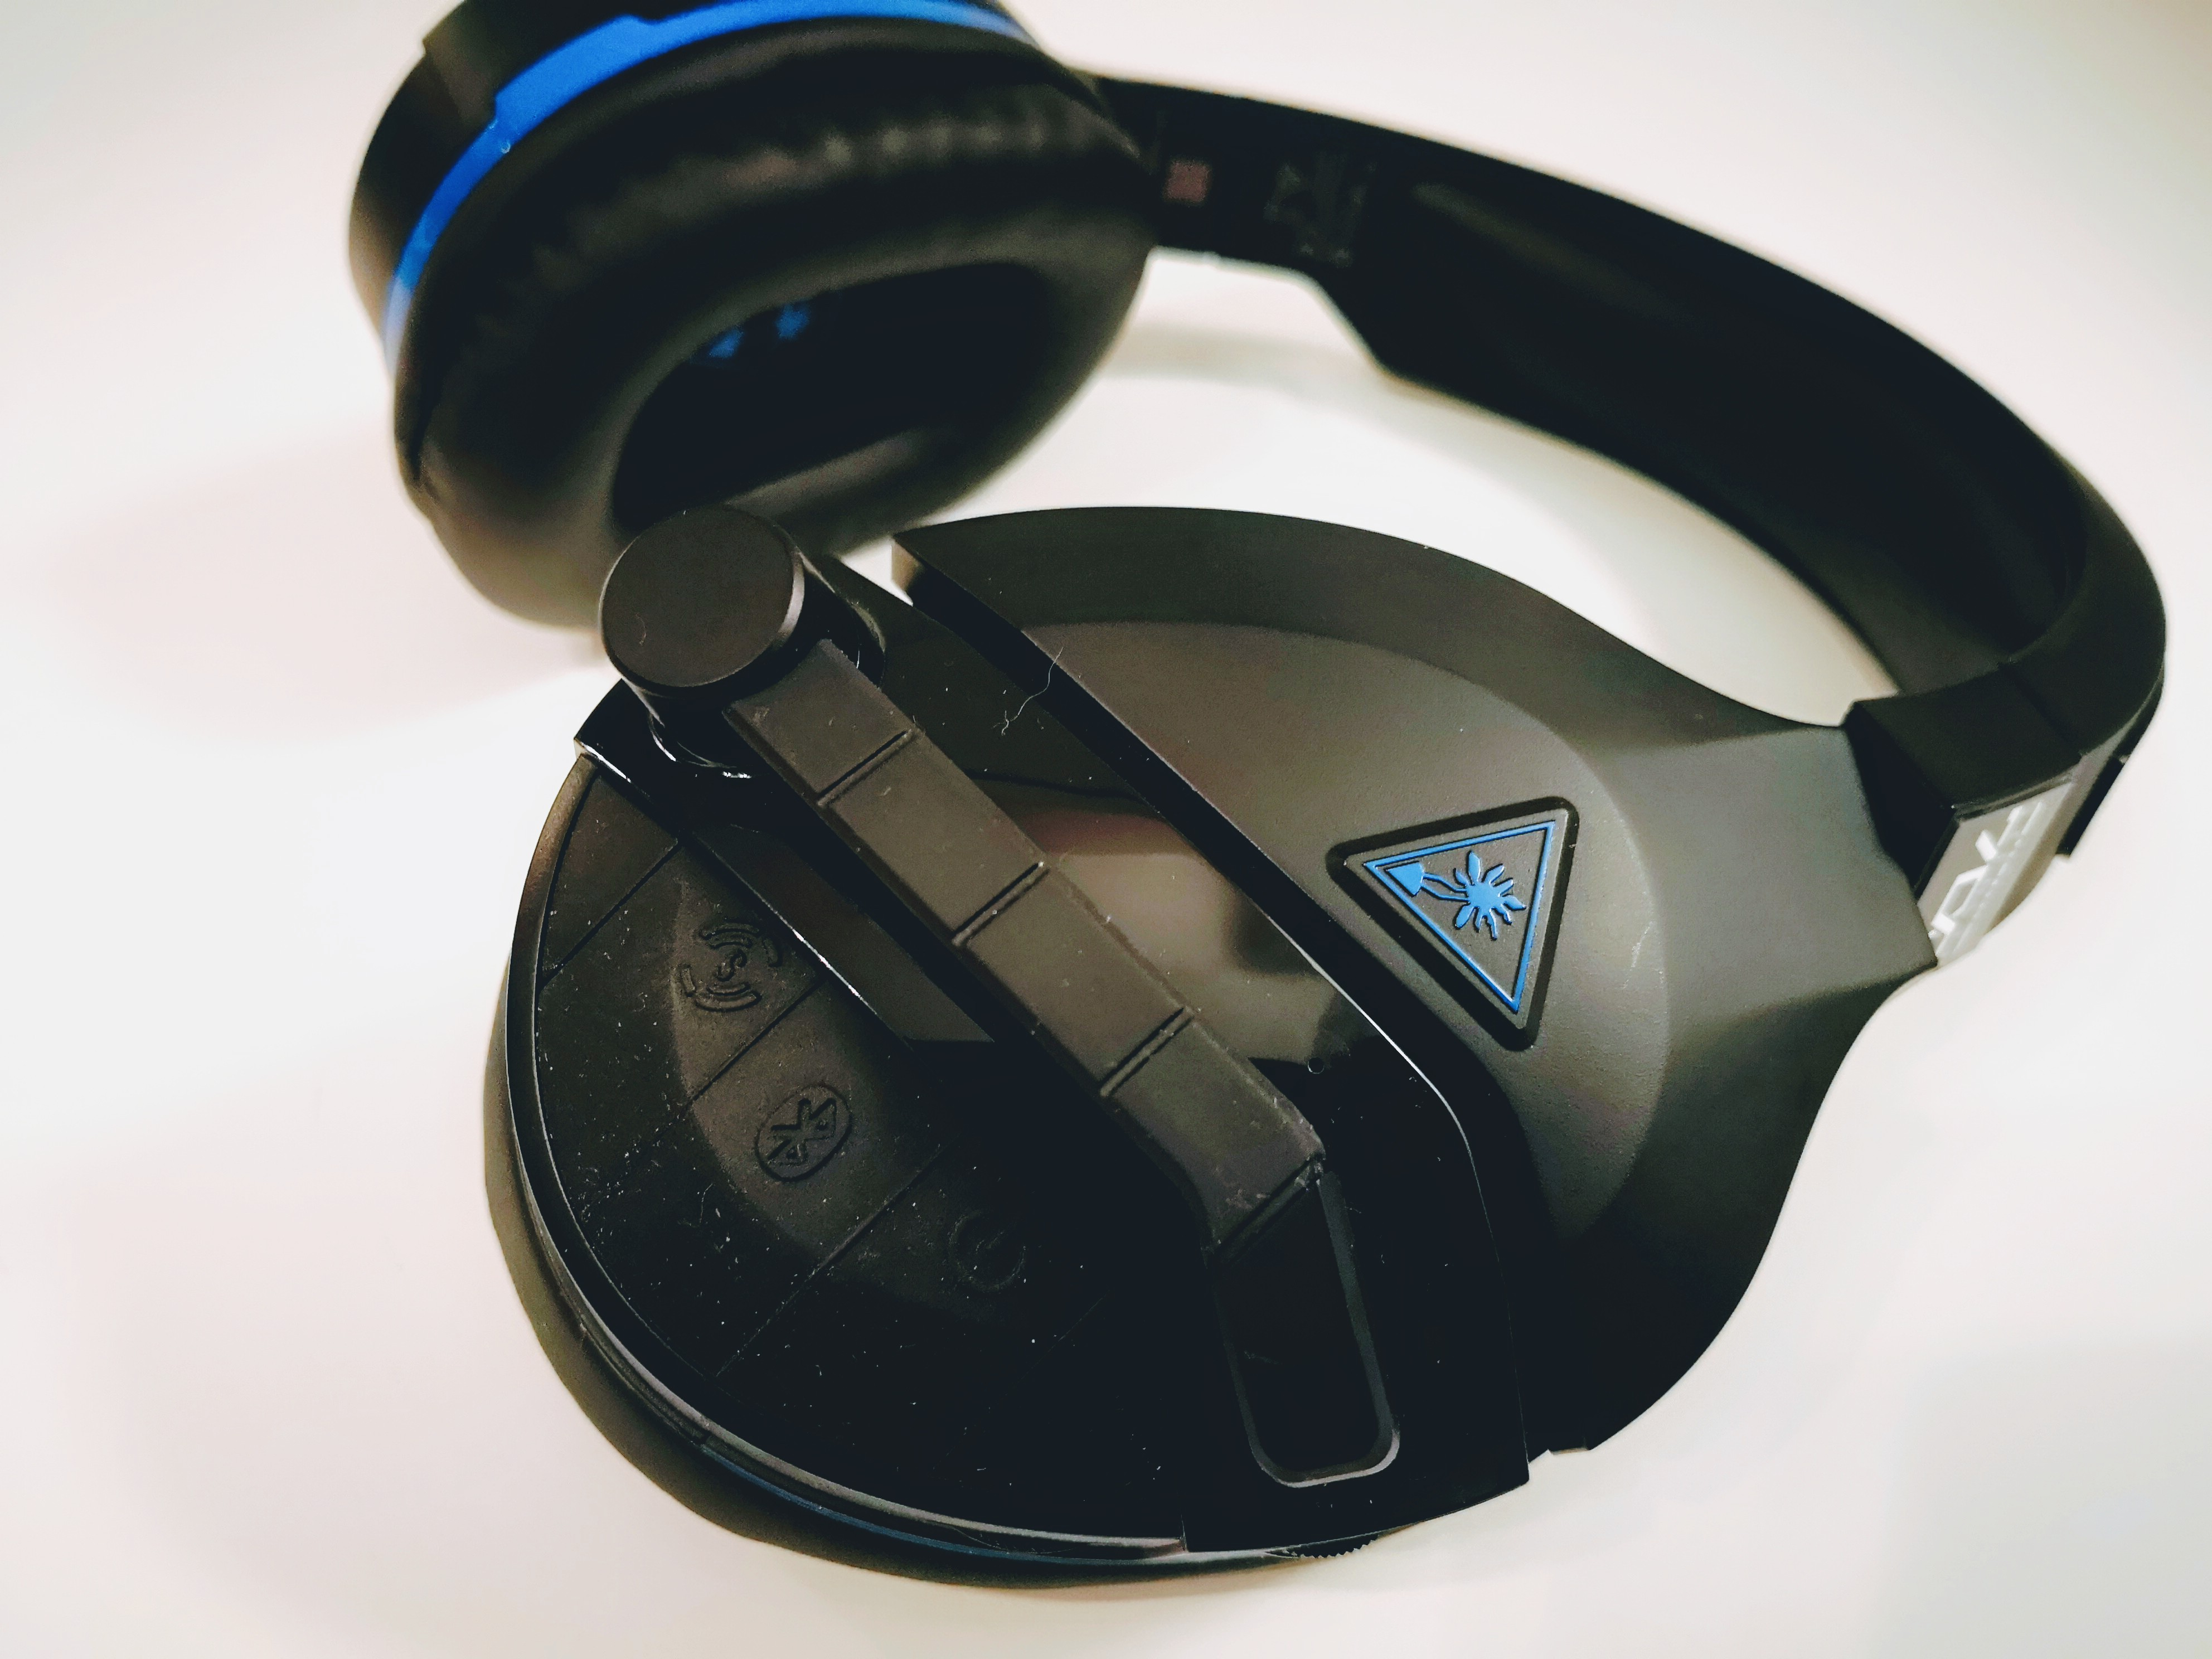 test du casque bluetooth turtle beach stealth 700 pour ps4. Black Bedroom Furniture Sets. Home Design Ideas